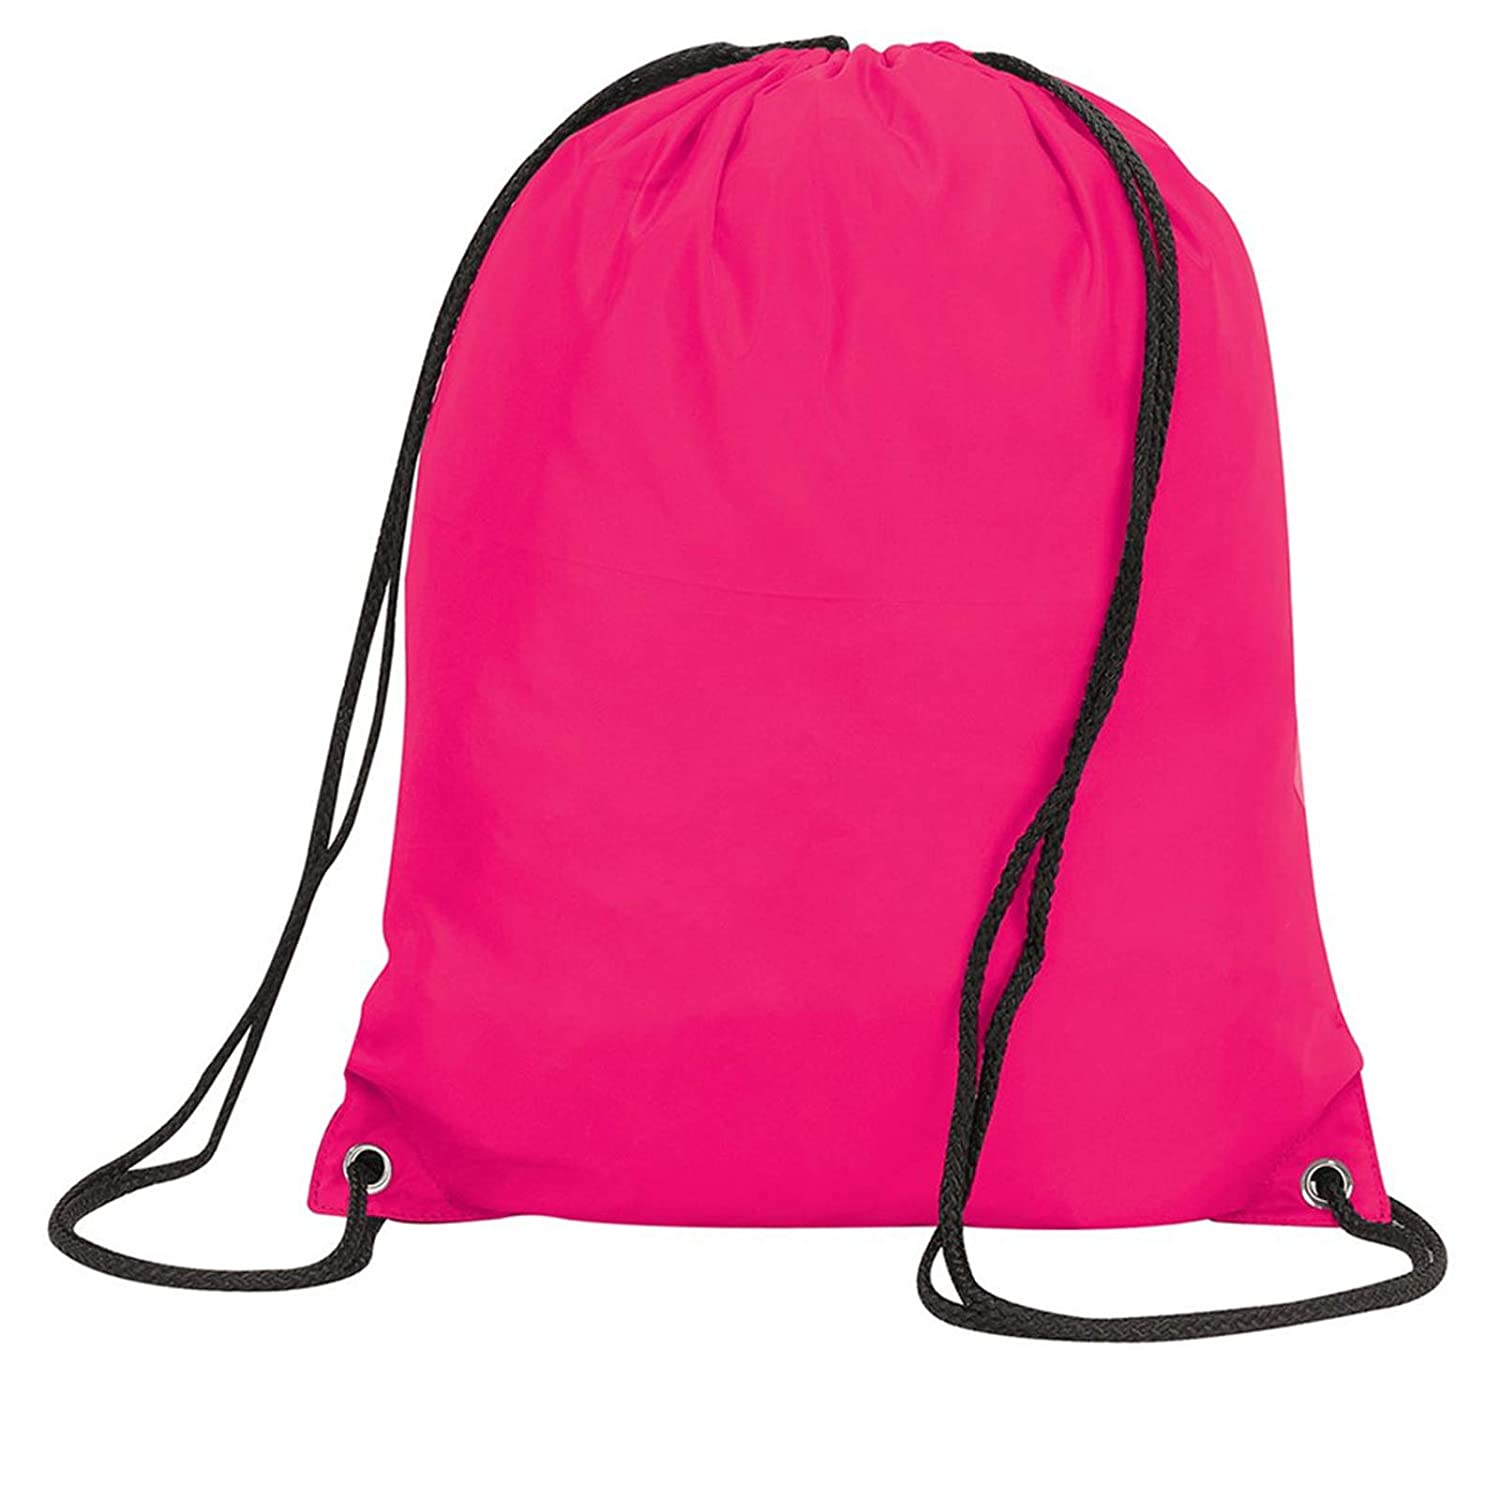 5 Pack of Drawstring School PE Bag Childrens Gym Sack Backpack Tote - 16 Colours PPH